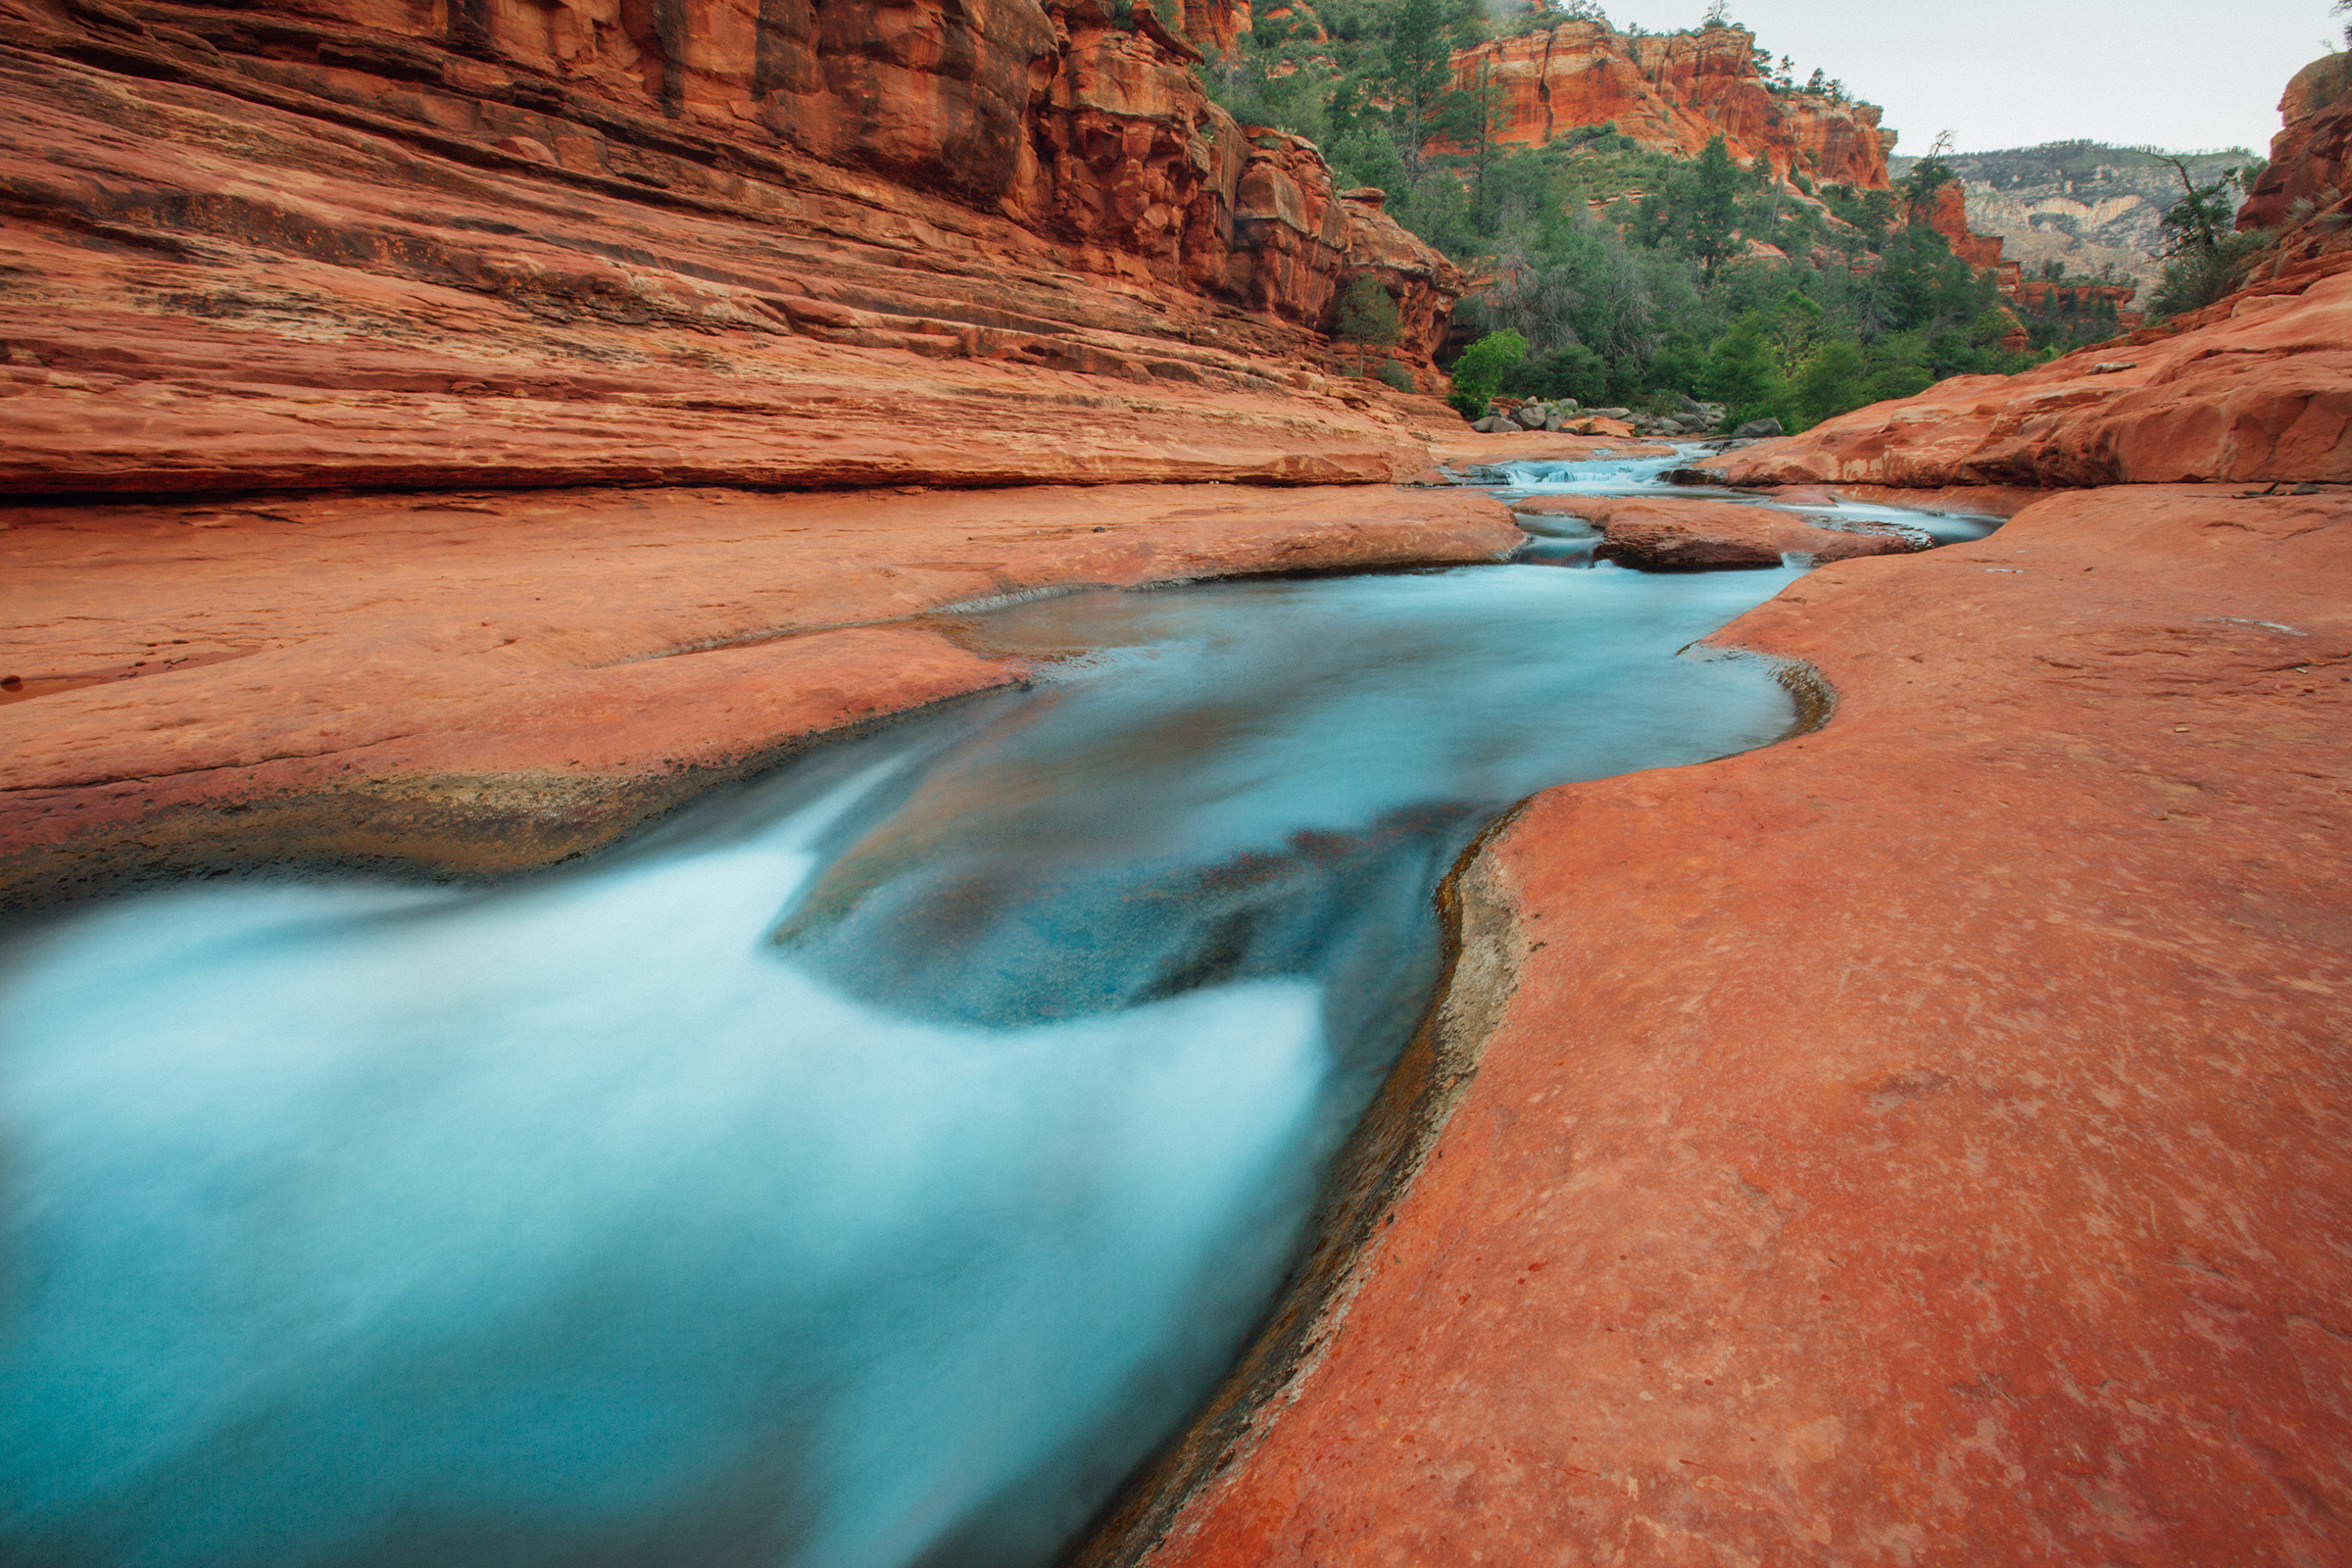 Things To Do In Sedona Concierge Services What To Do In Sedona - 10 things to see and do in sedona